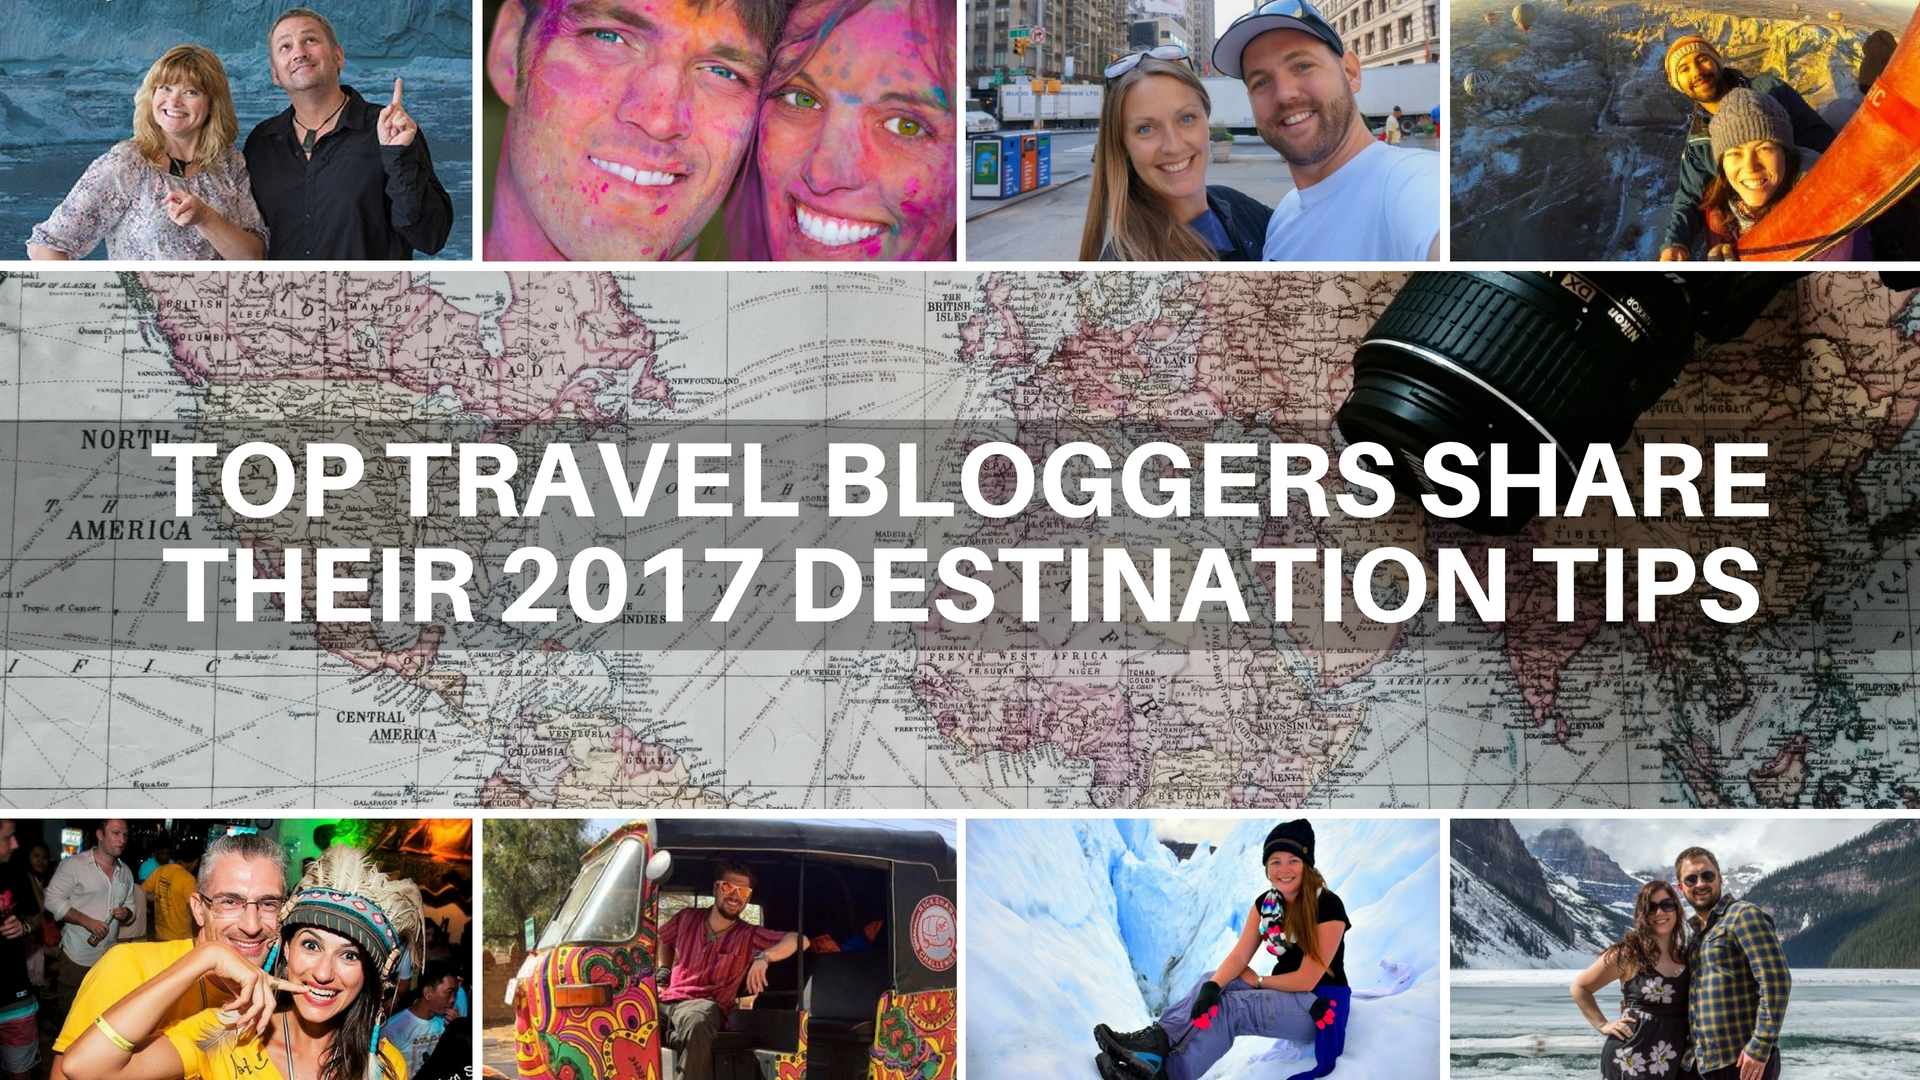 Top Travel Bloggers Destination 2017 Cover